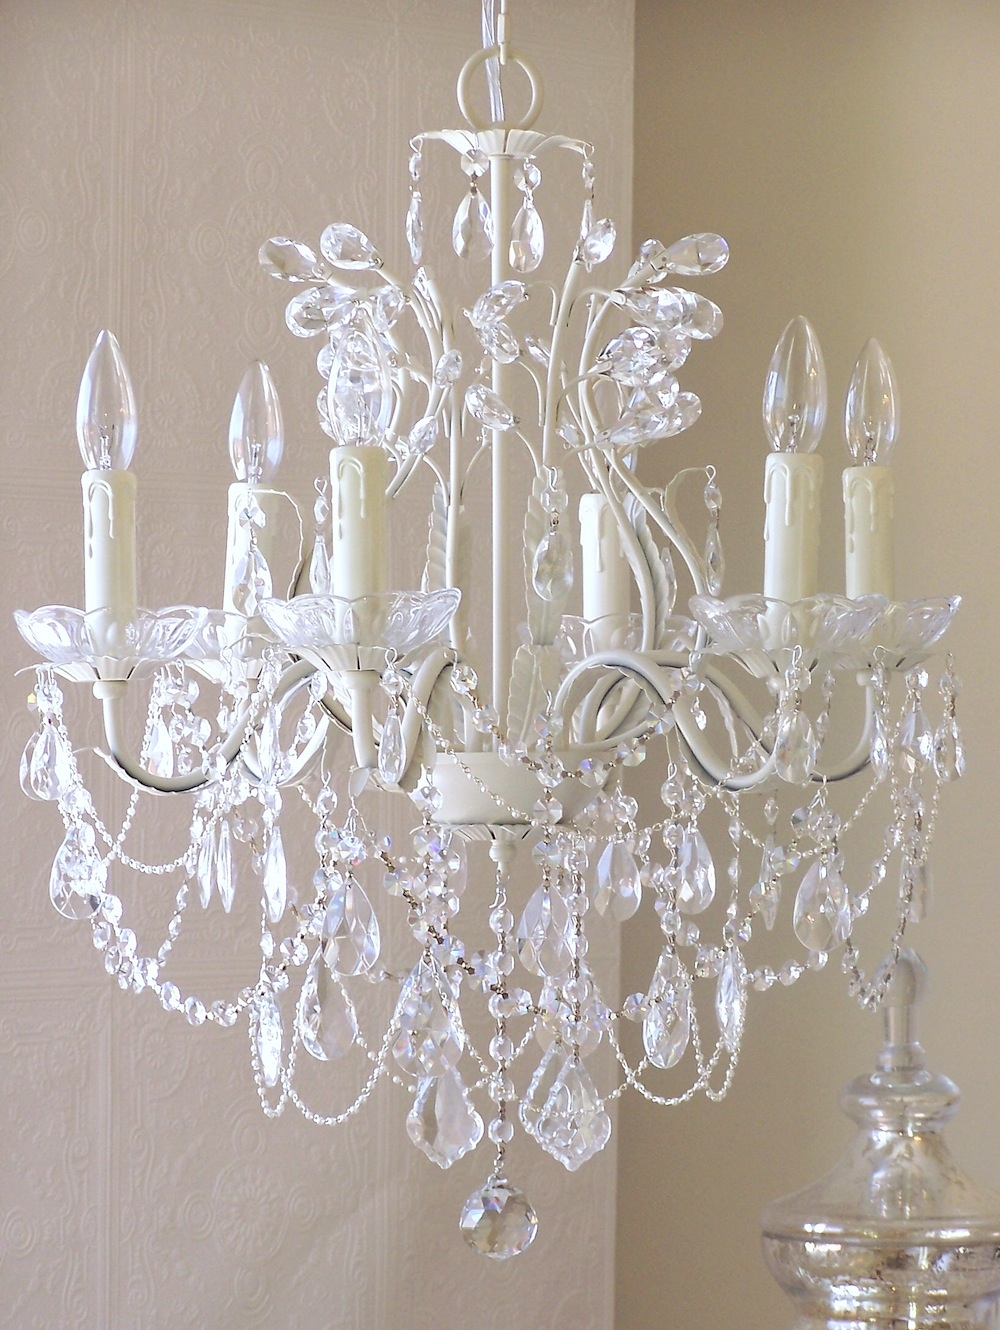 Living Room High Quality Crystal Chandeliers For Home Lighting Regarding White And Crystal Chandeliers (Image 21 of 25)